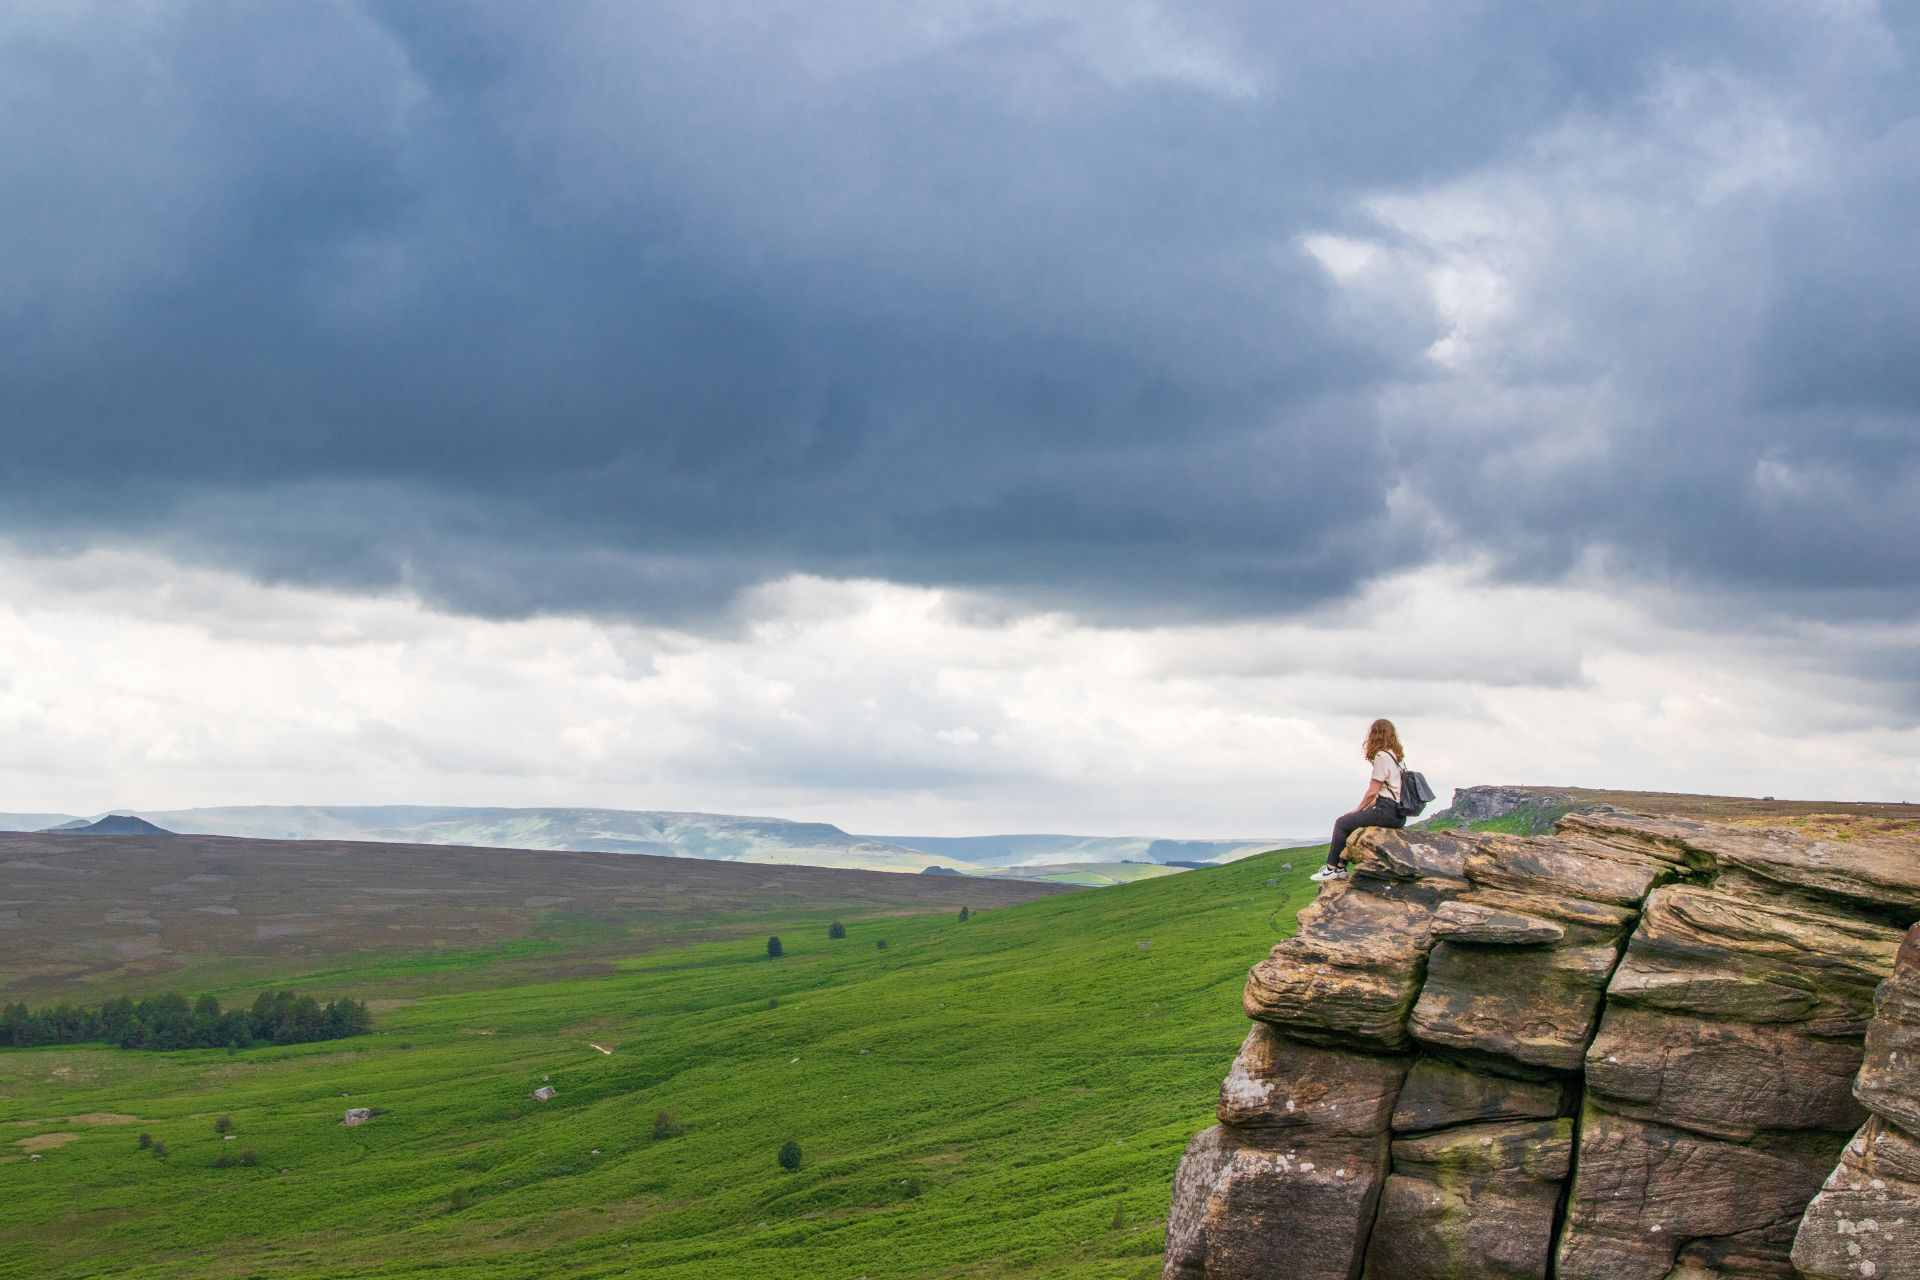 woman-wearing-backpack-sat-on-rock-cliff-face-overlooking-green-fields-and-hills-on-a-moody-cloudy-day-at-stanage-edge